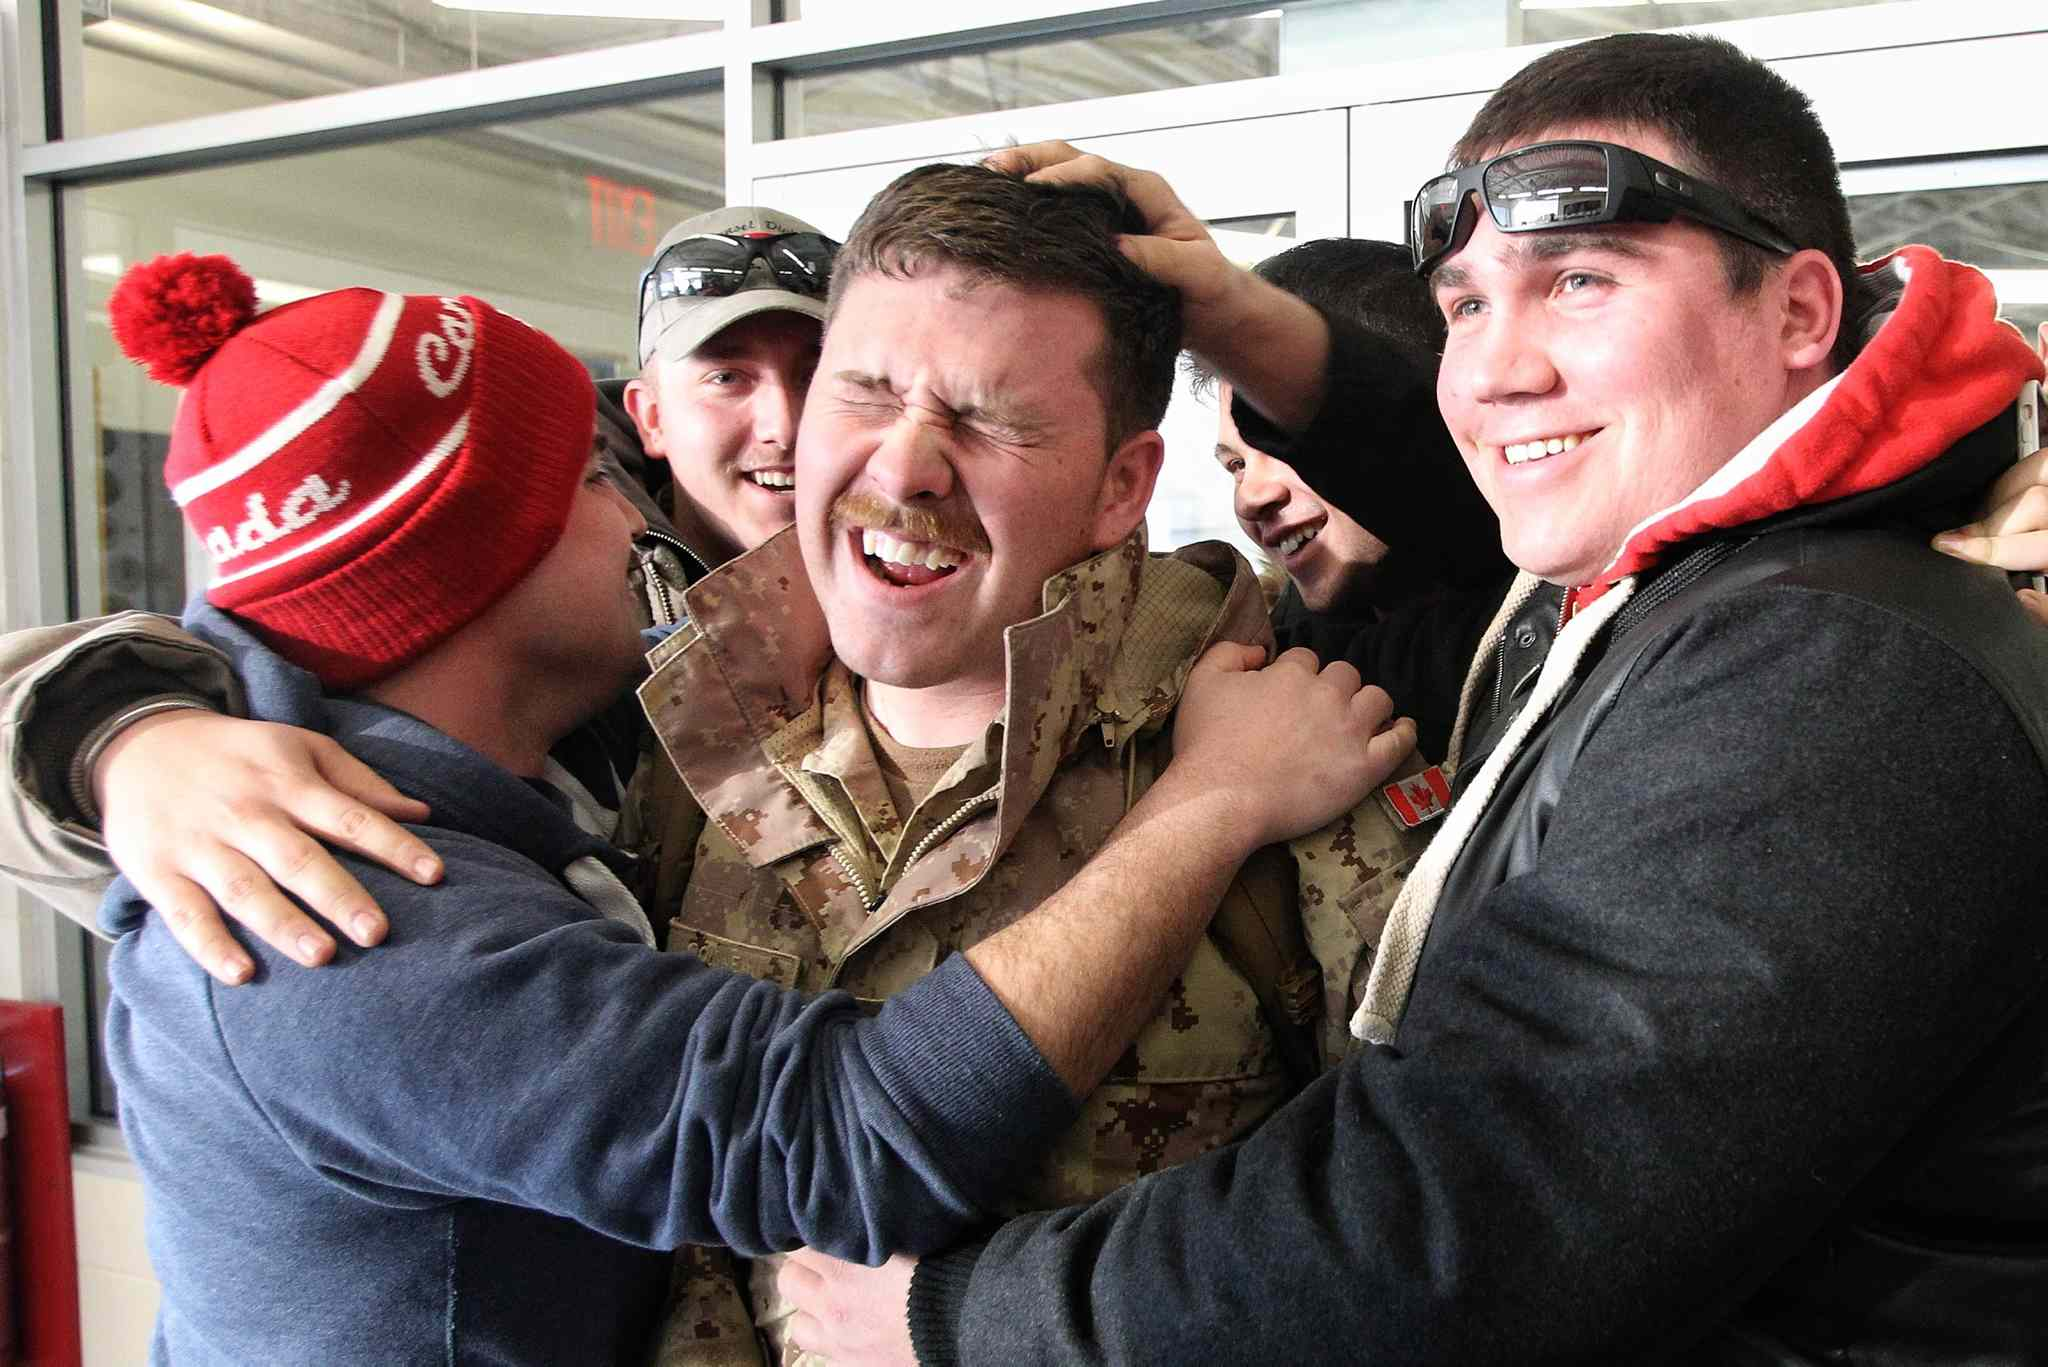 Master Bombardier Nathan Cousineau (centre) of the 116 Independent Field Battery out of Kenora is greeted by friends Shaun Magill (left) and Kevin Weirsema after arriving in Winnipeg at 17 Wing from Afghanistan on Monday.